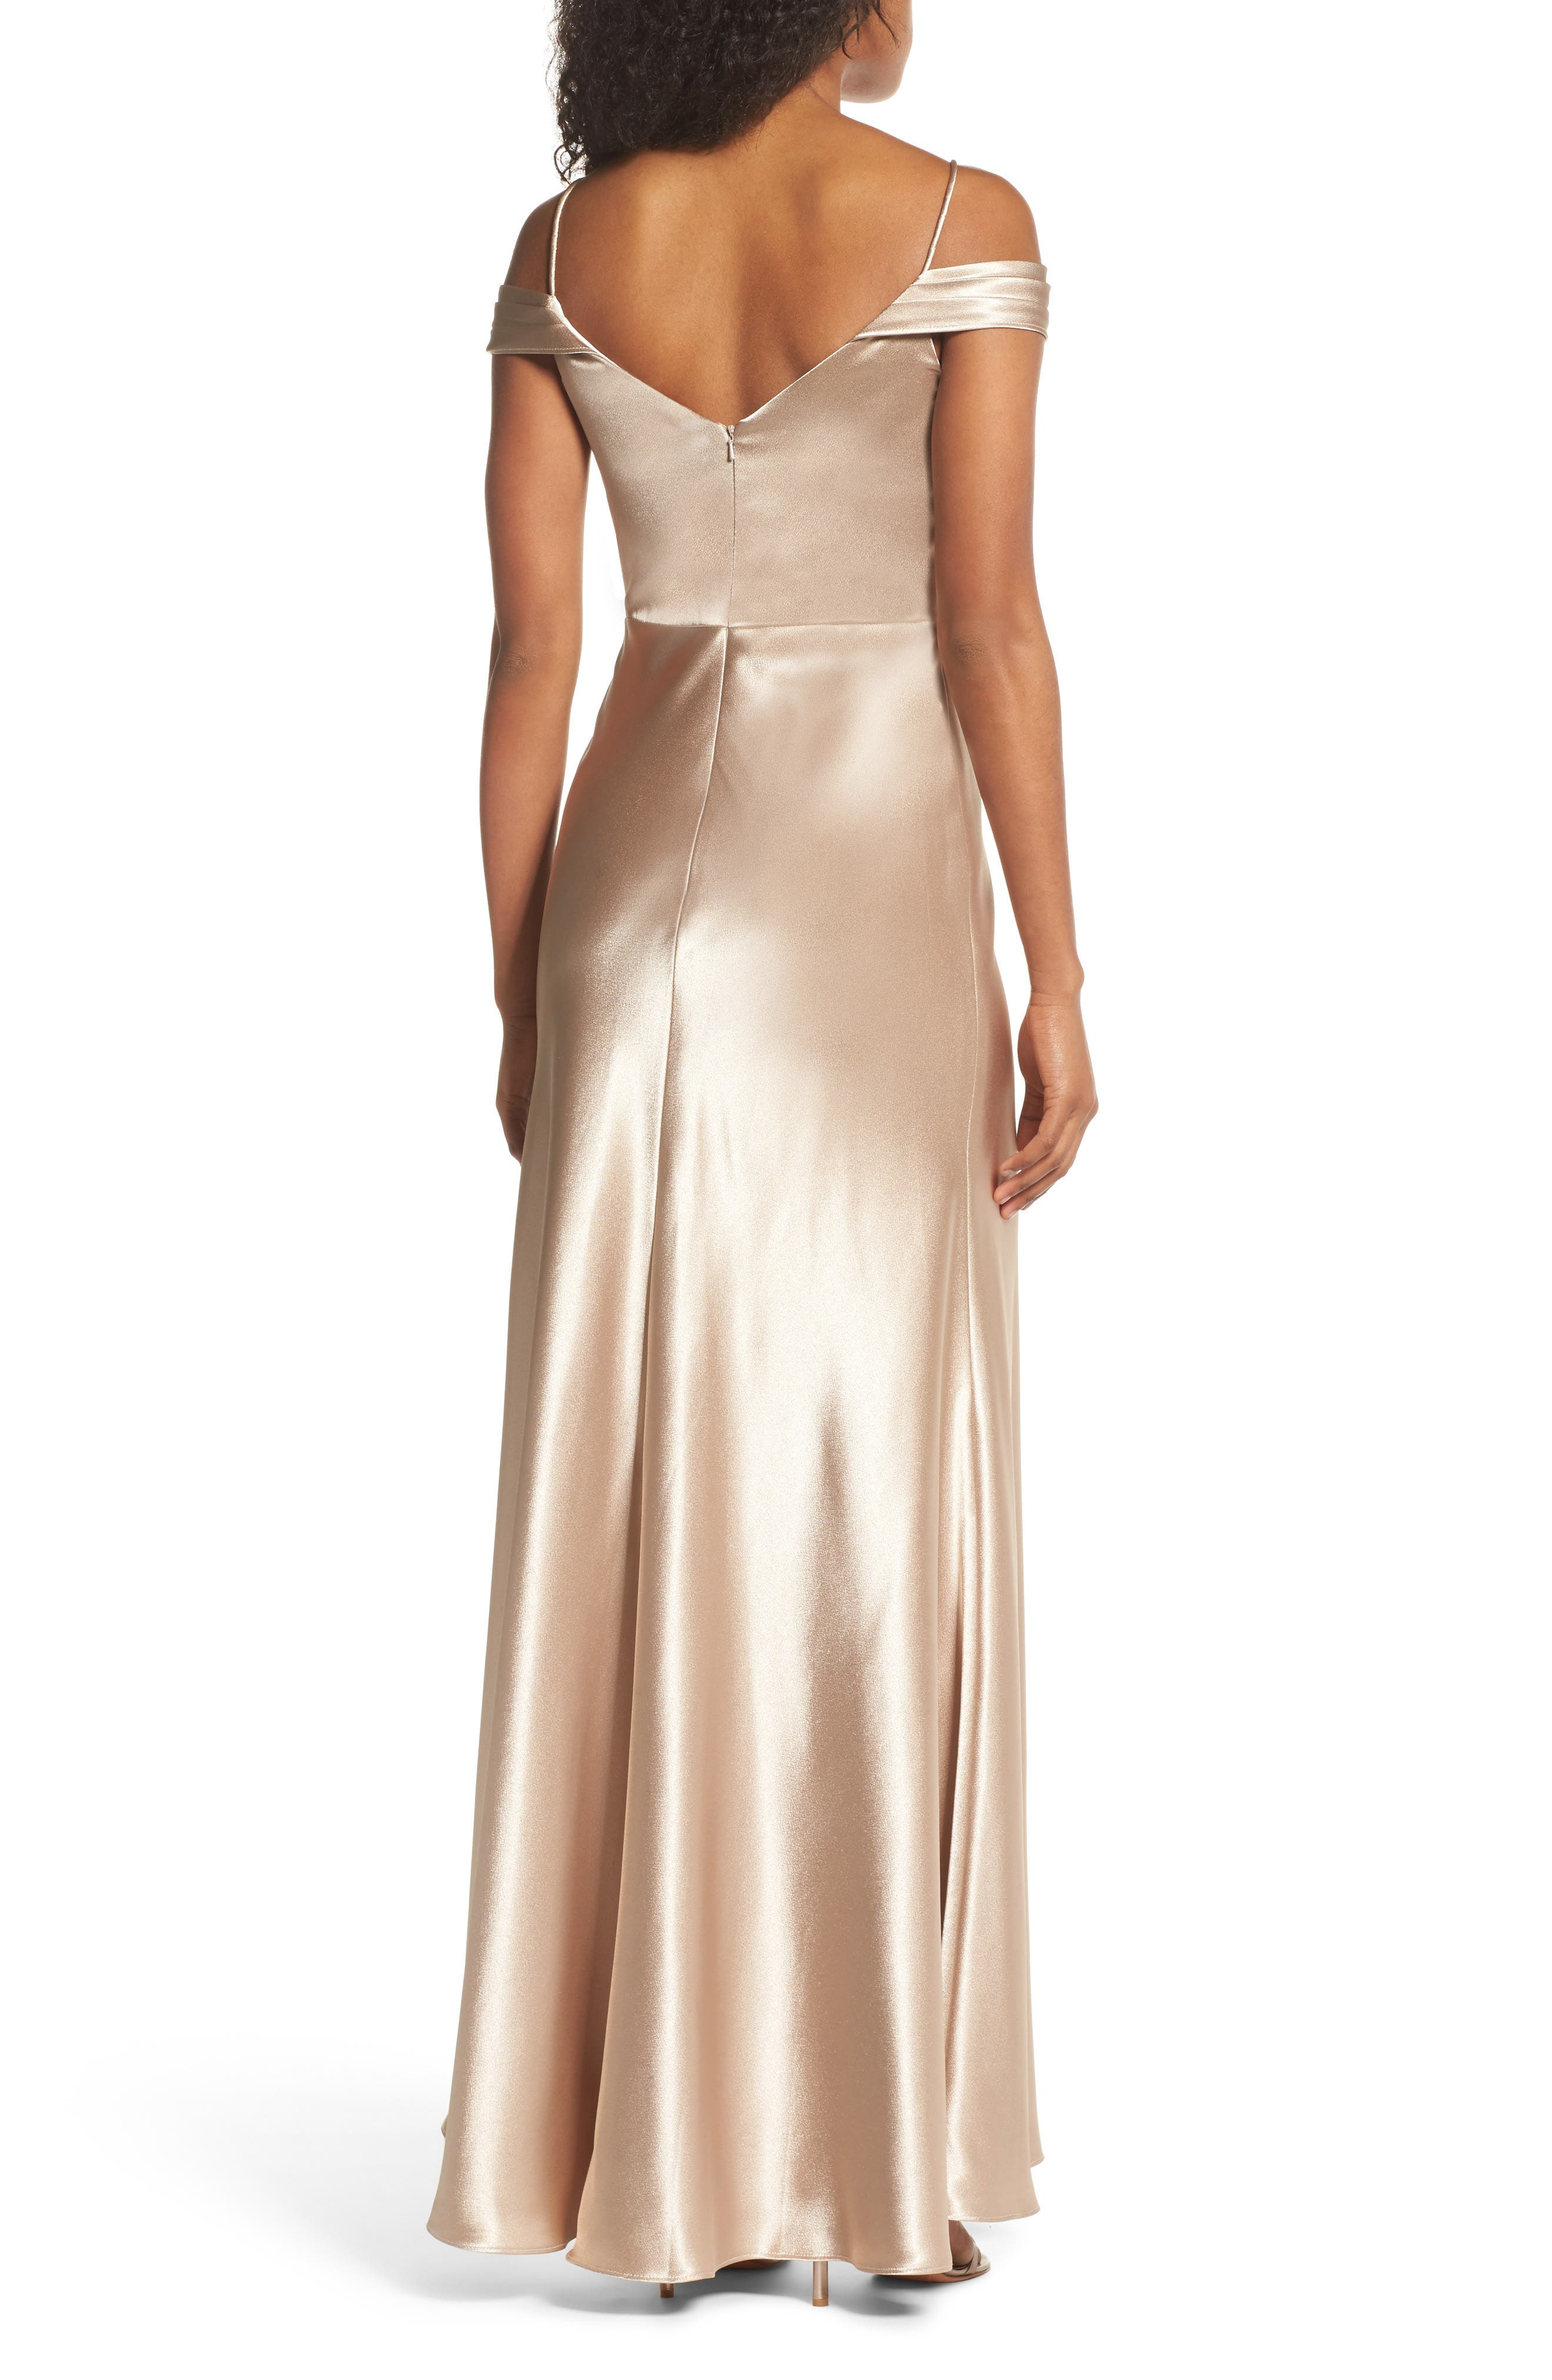 JENNY YOO, Serene Satin Off the Shoulder Gown, Alternate thumbnail 2, color, LATTE